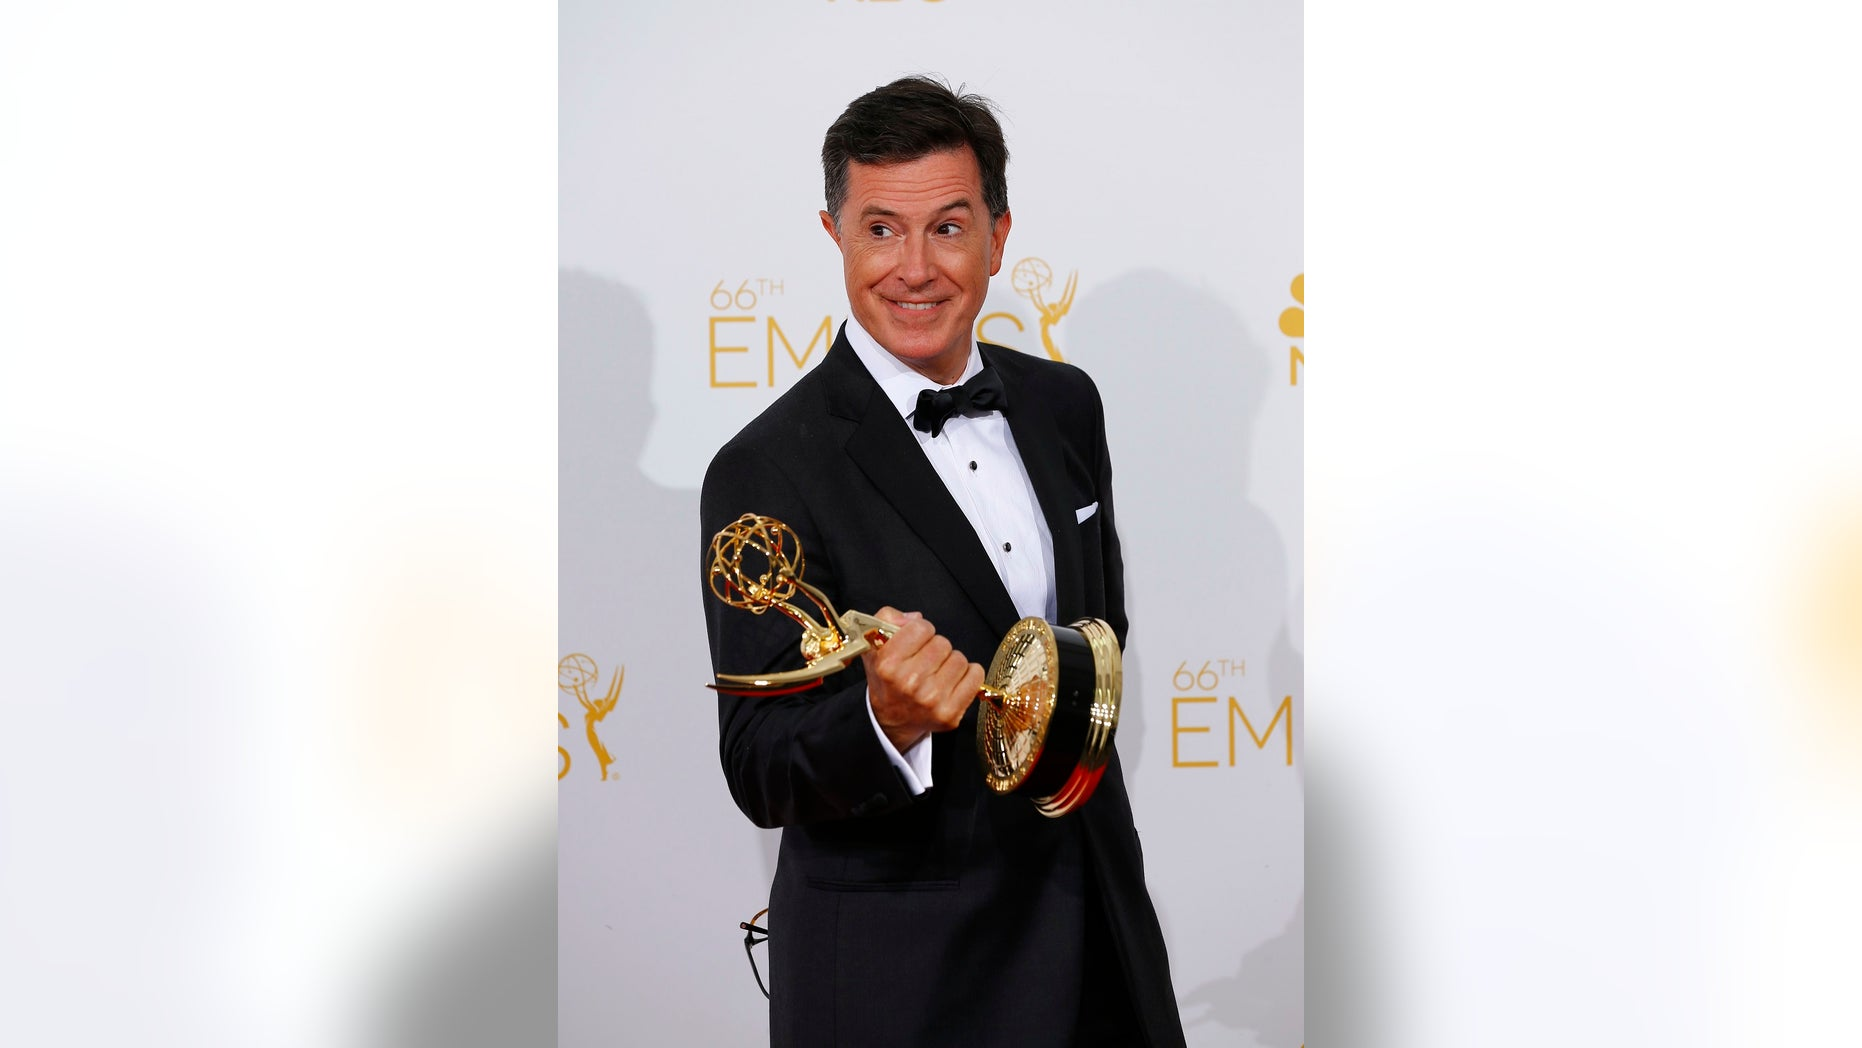 """Stephen Colbert poses with his Outstanding Variety Series award for Comedy Central's """"The Colbert Report"""" at the 66th Primetime Emmy Awards in Los Angeles, California August 25, 2014. The host responded to Donald Trump's tweet about his time hosting the 2017 awards."""